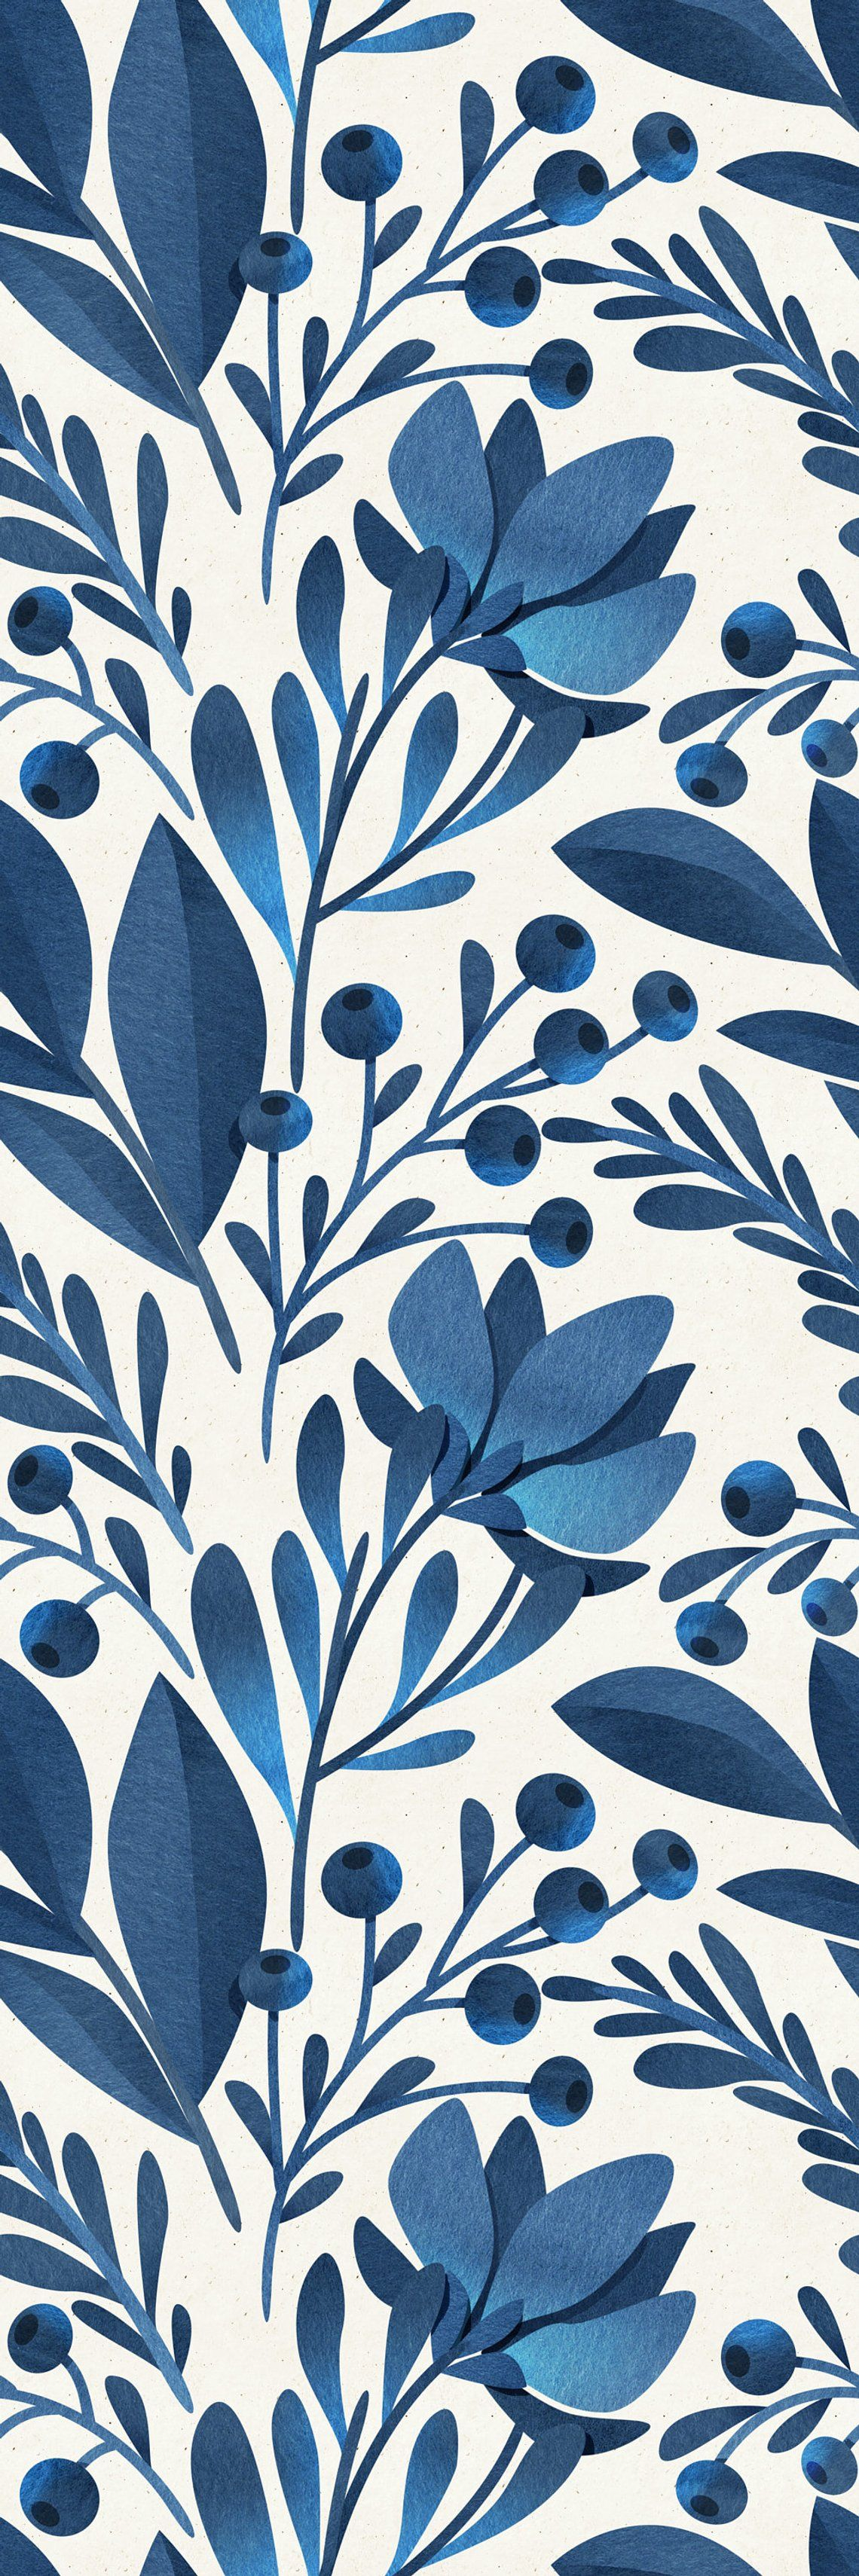 Removable Wallpaper Peel and Stick Wallpaper Self Adhesive Wallpaper Blue Floral Pattern